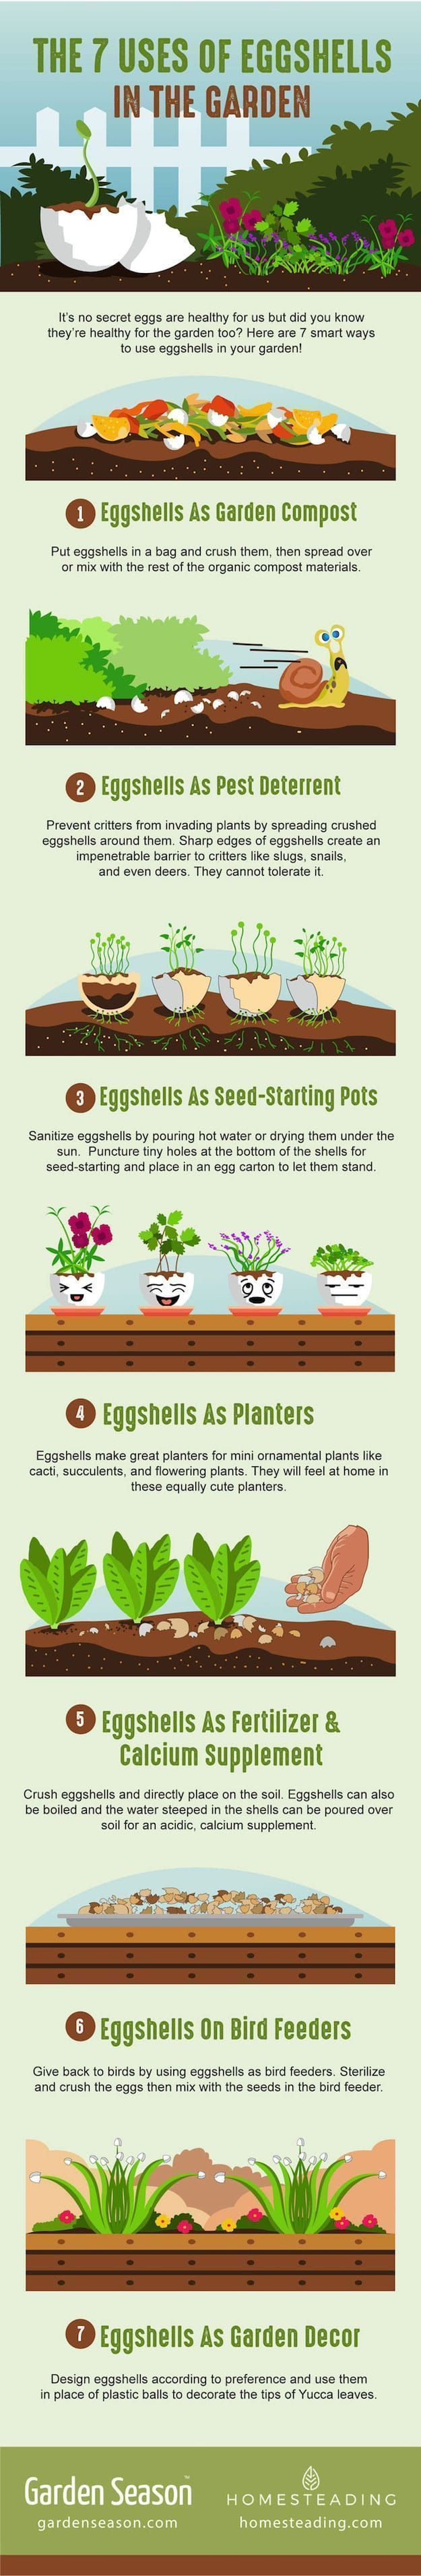 How to use eggshells in the garden costcutting gardening hacks